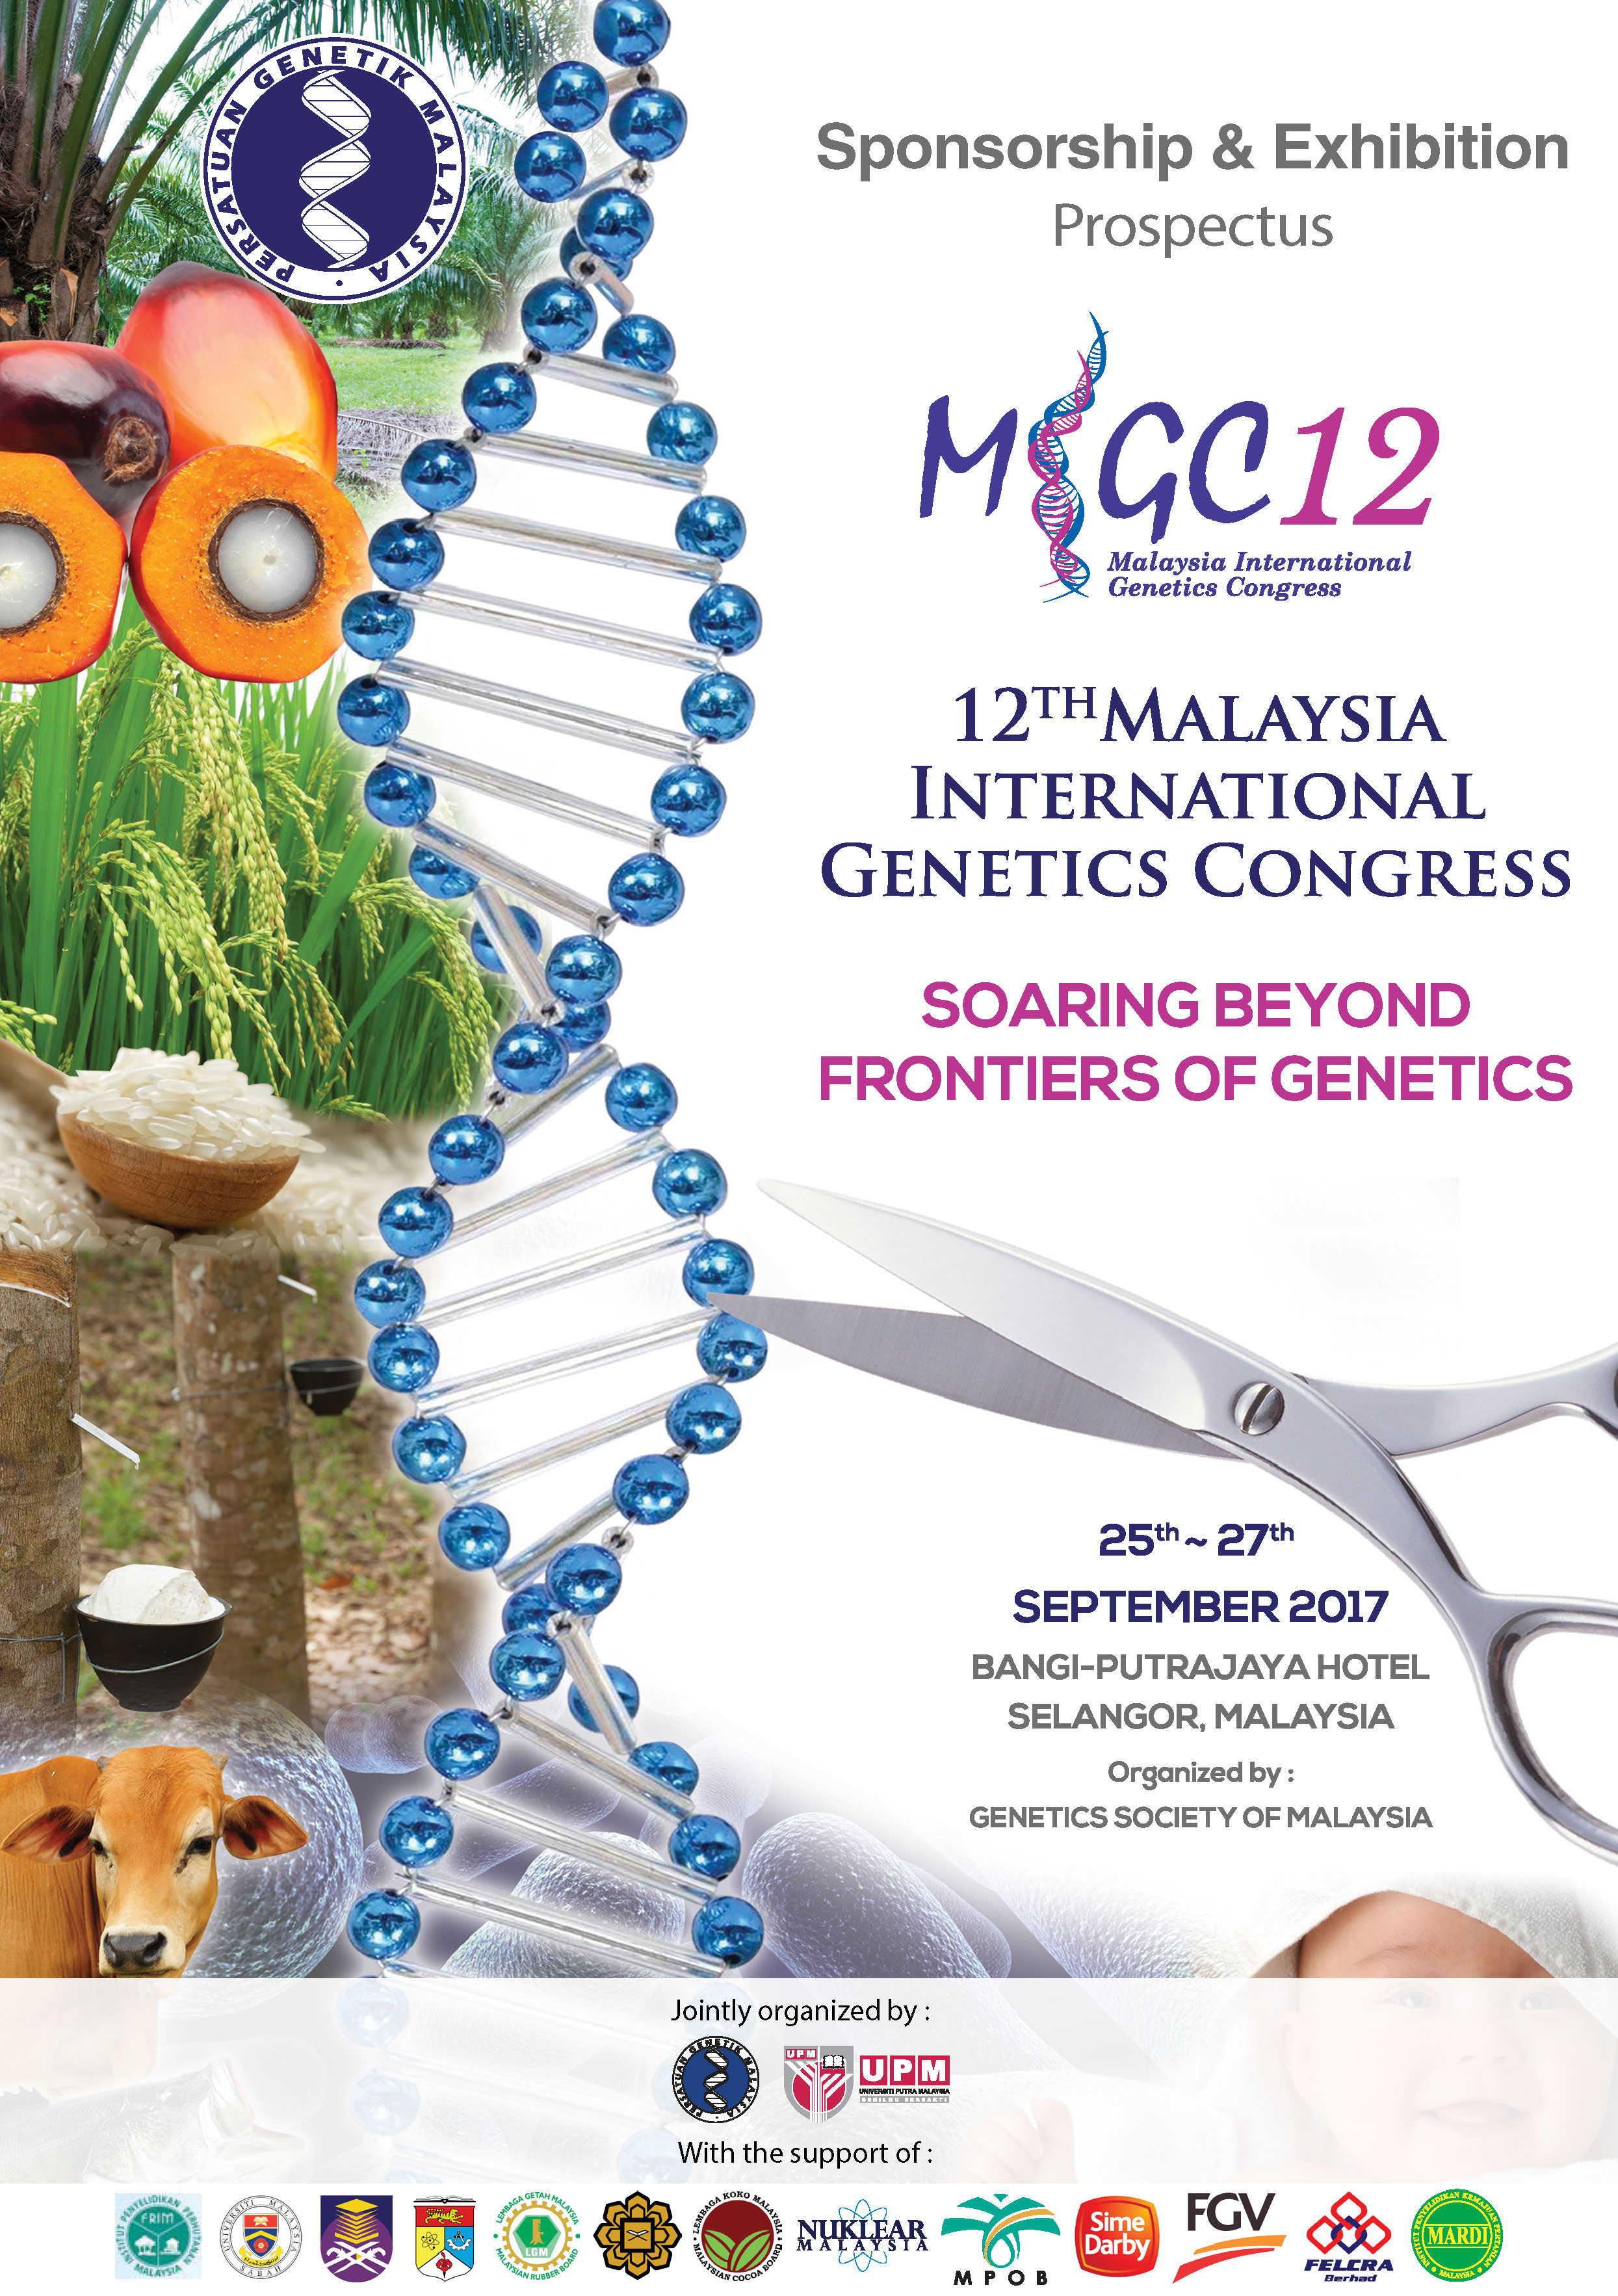 The 12th Malaysia International Genetics Congress (MiGC 12)